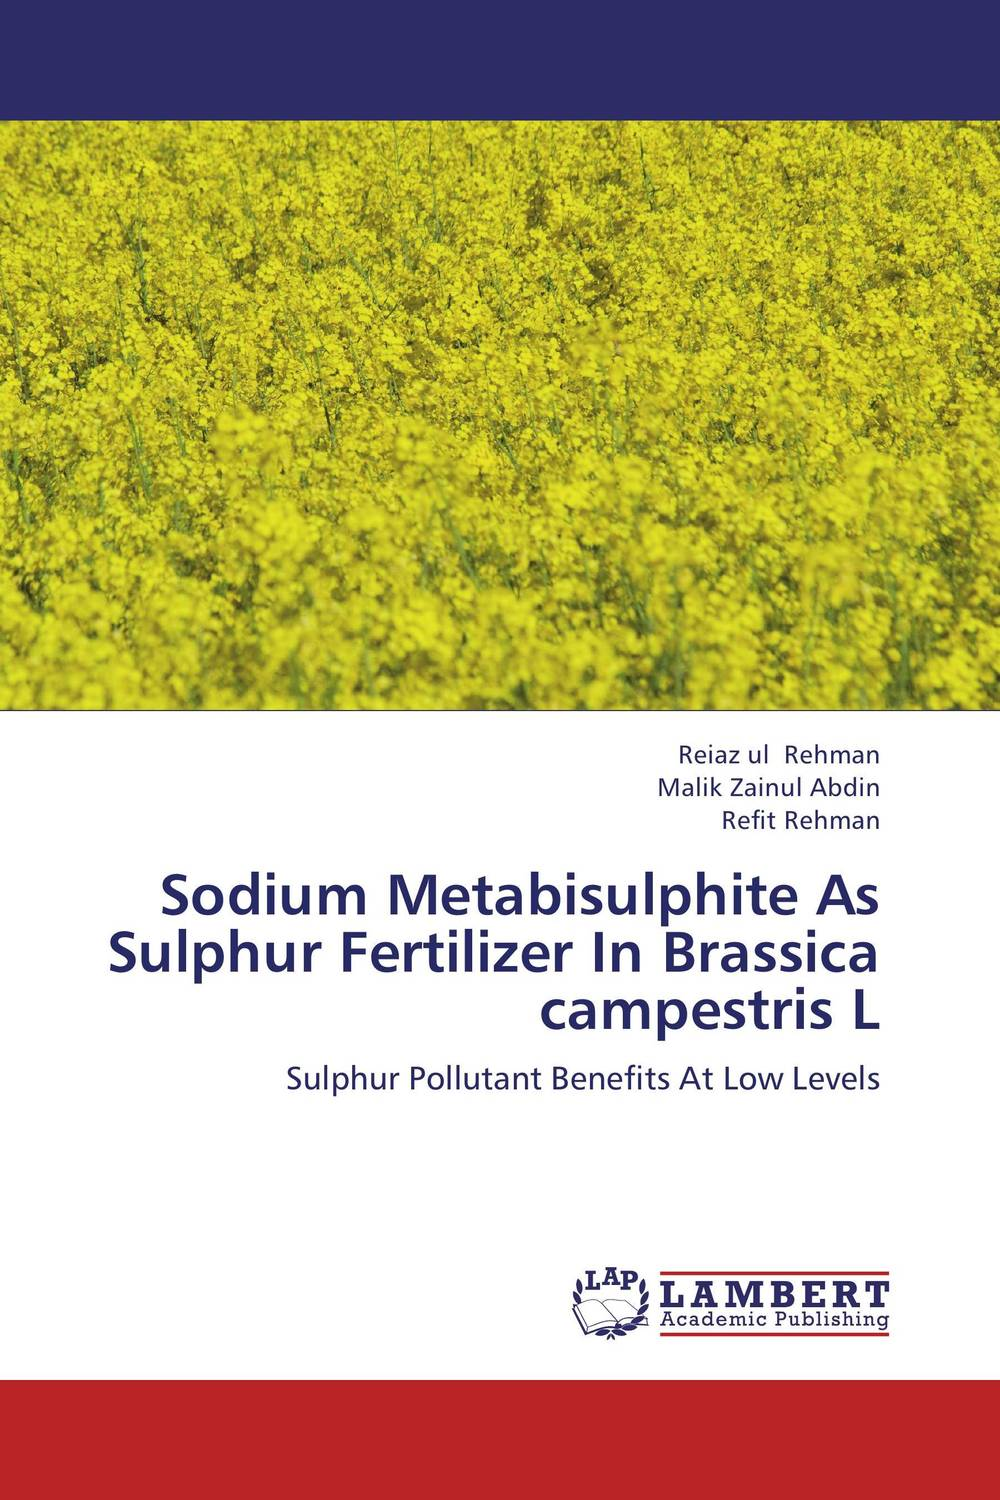 Sodium Metabisulphite As Sulphur Fertilizer In Brassica campestris L nify benny and c h sujatha enrichment of sulphur compounds in the cochin estuarine system